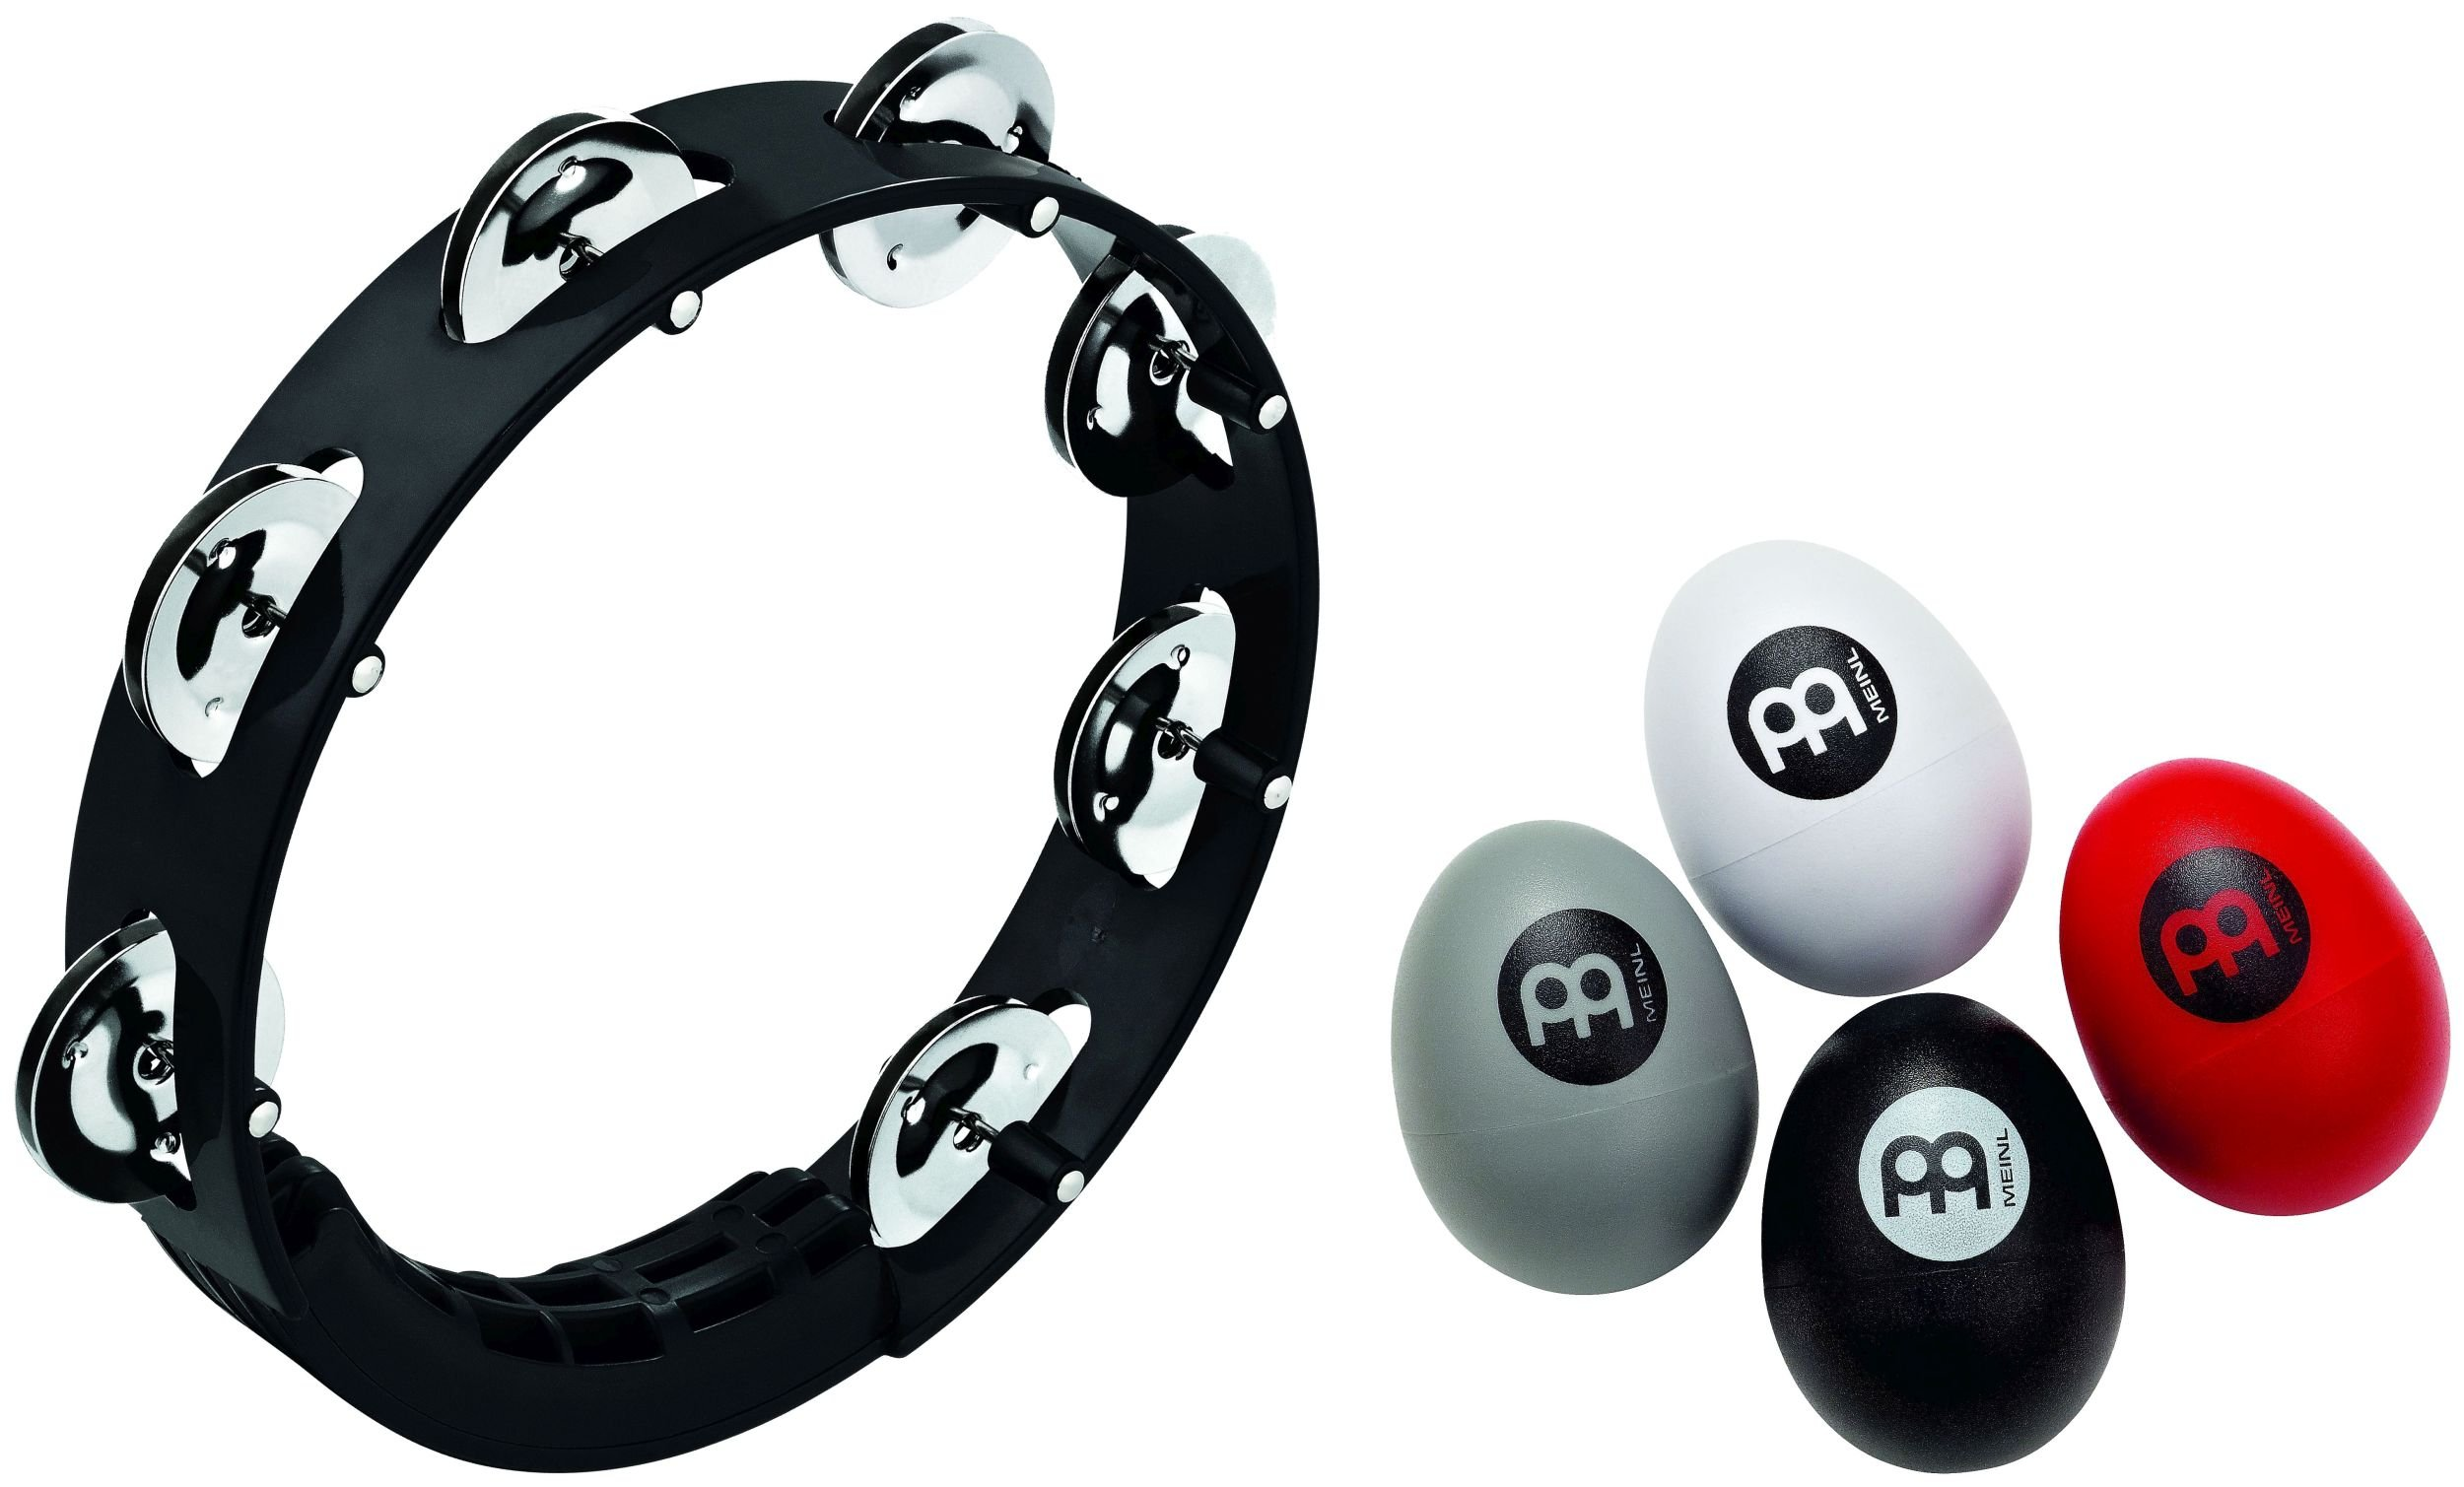 Meinl Percussion PP-4 Singer/Songwriter Percussion Pack with 4-Piece Egg Shaker Set and Compact Tambourine by Meinl Percussion